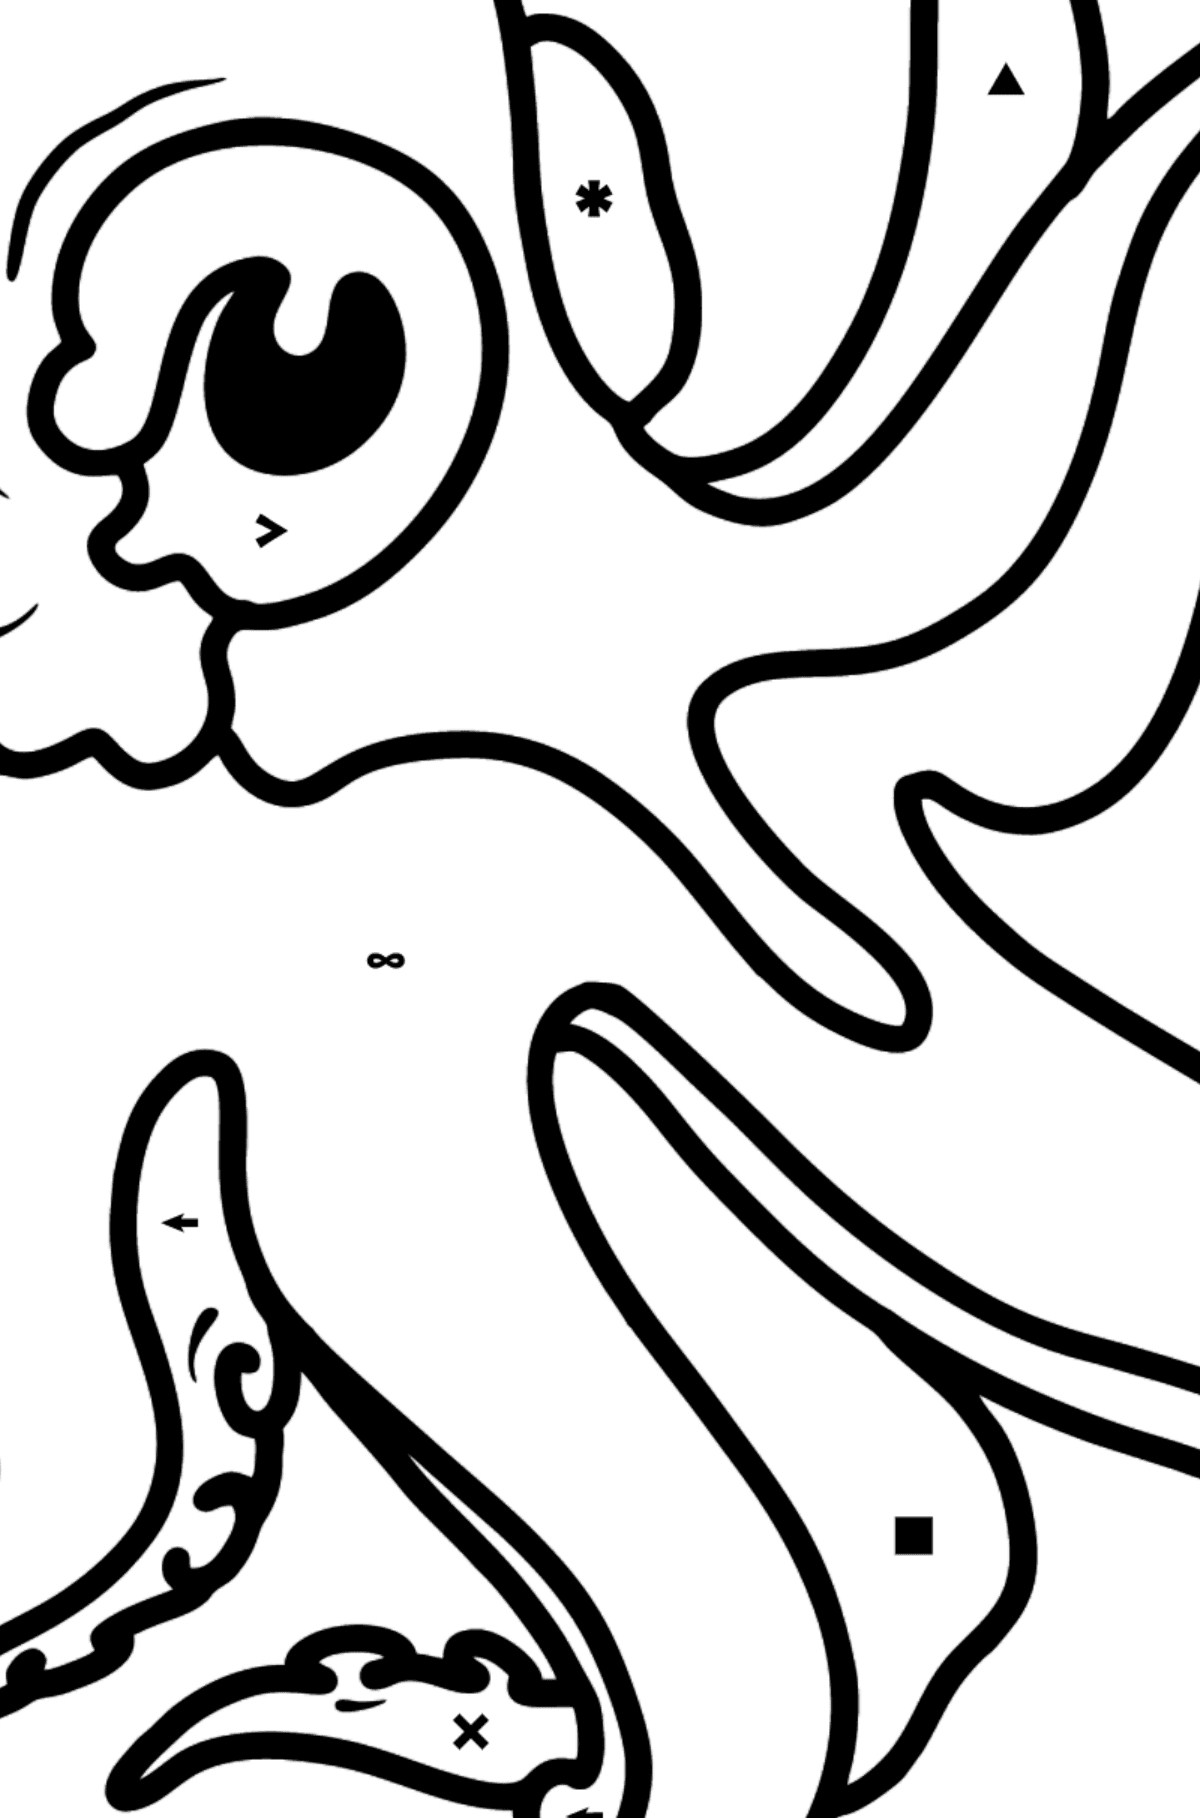 Octopus coloring page - Coloring by Symbols for Kids